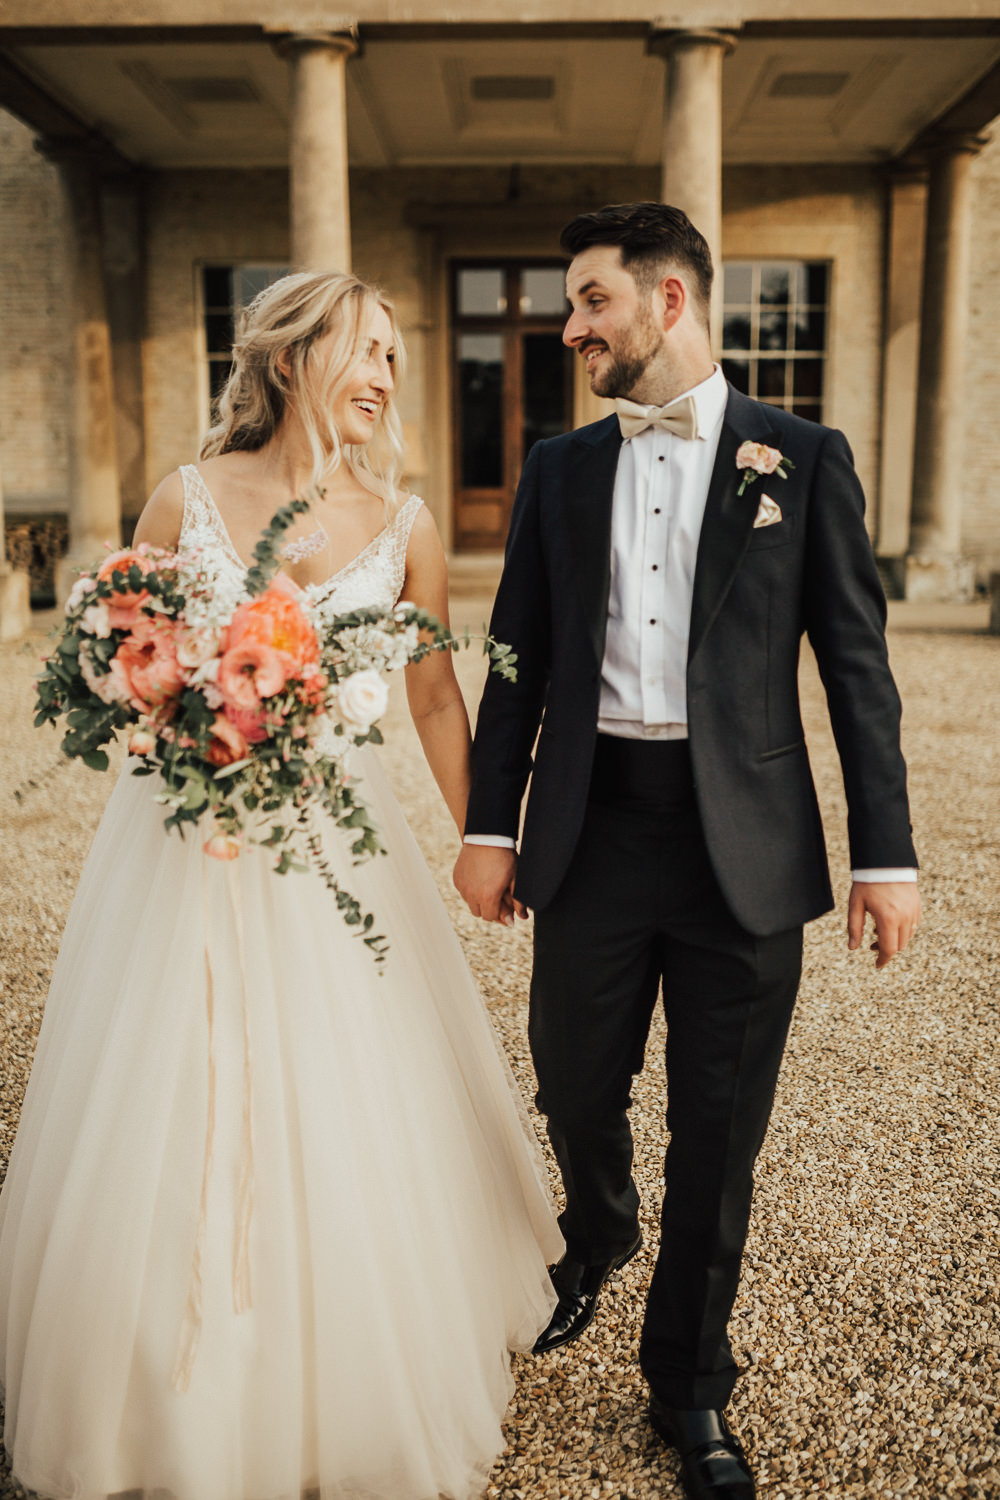 Groom Suit Tux Tuxedo Bow Tie Stubton Hall Wedding Darina Stoda Photography